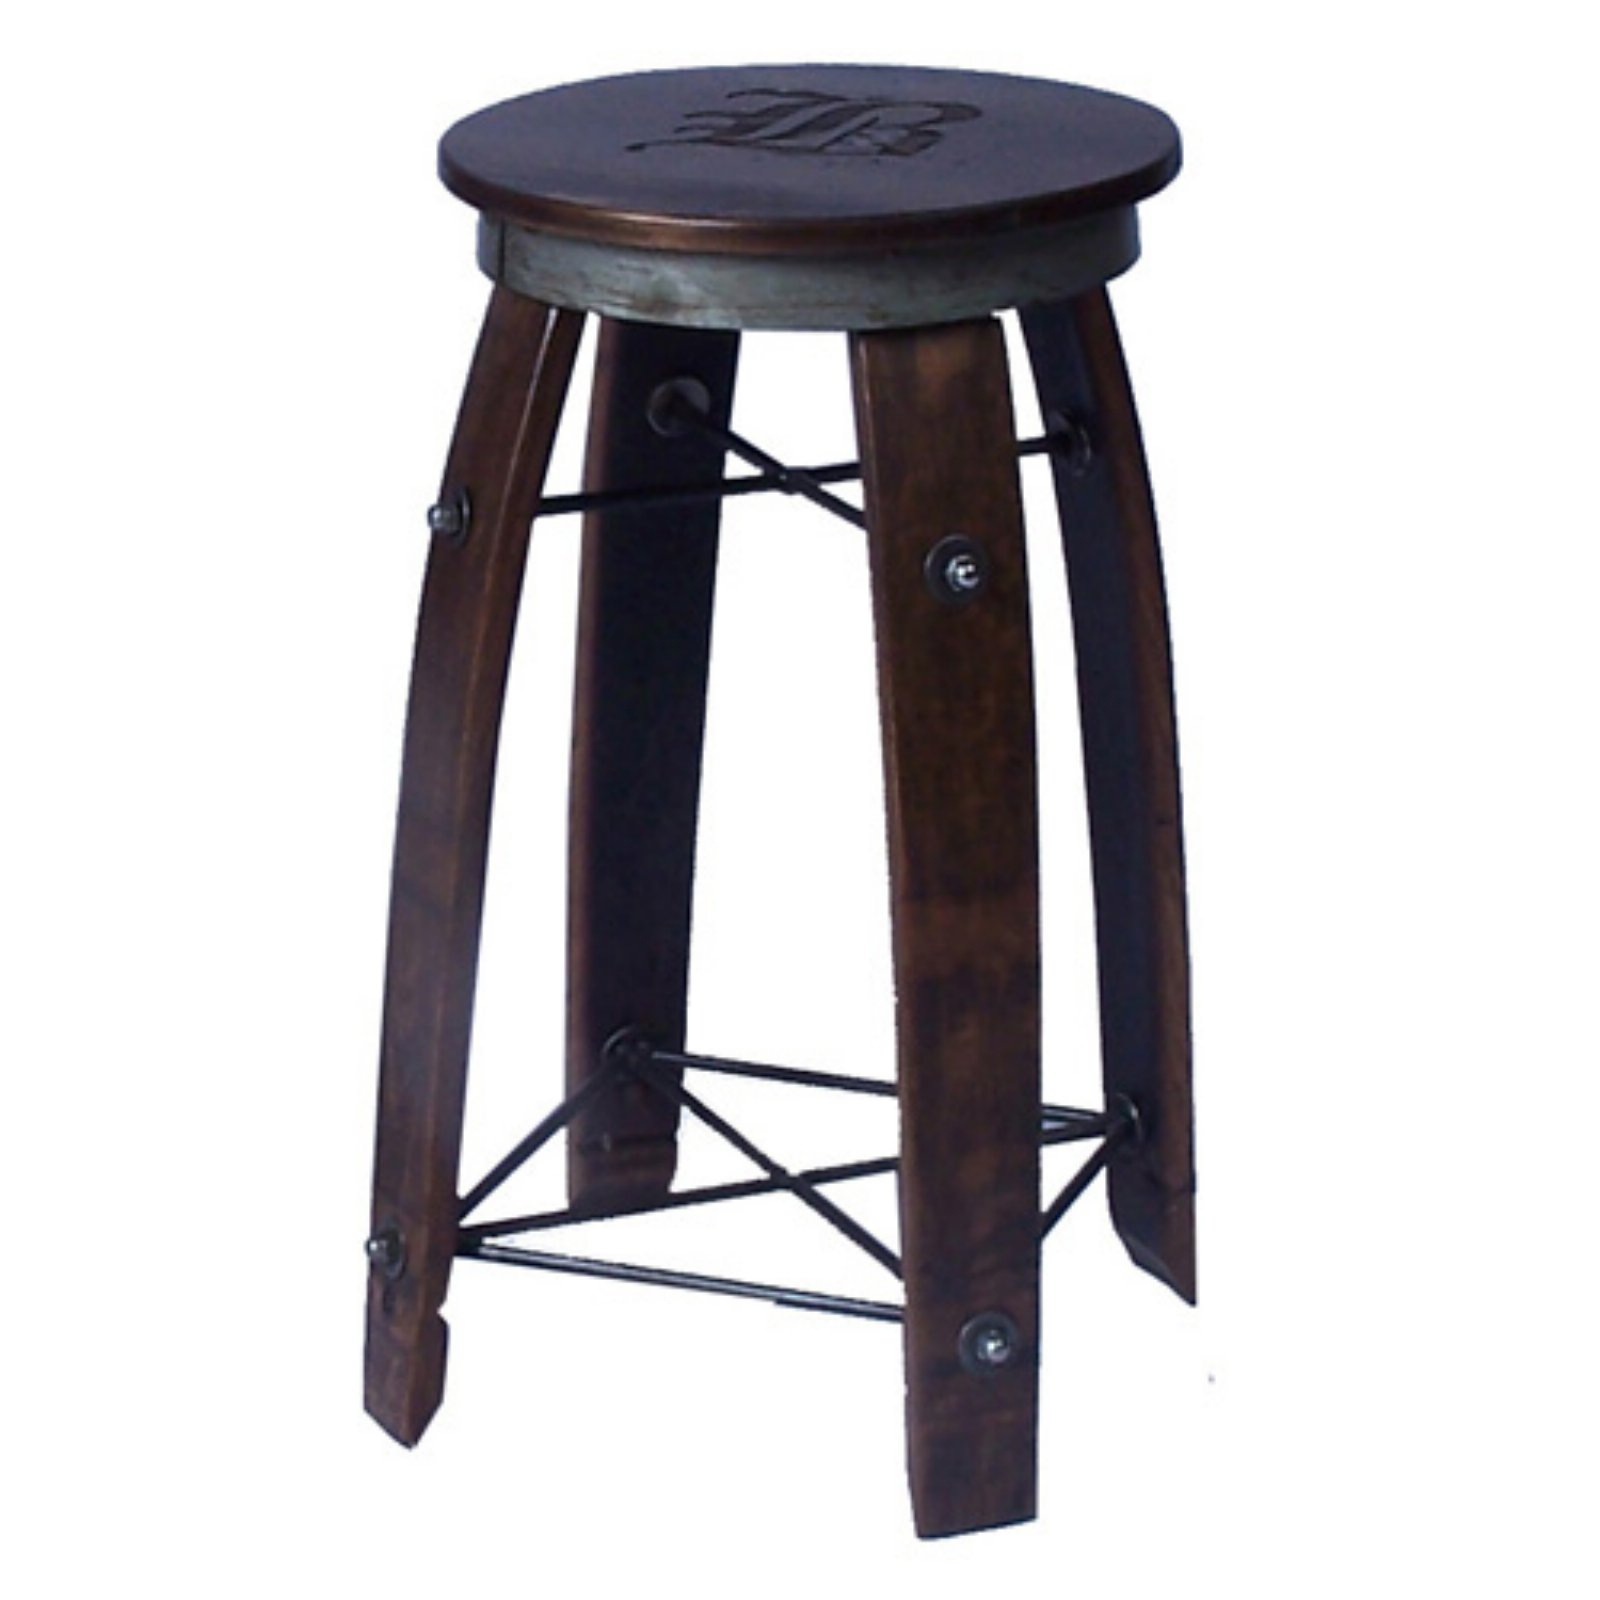 2 Day Designs Backless 28 in. Daisy Stave Counter Stool